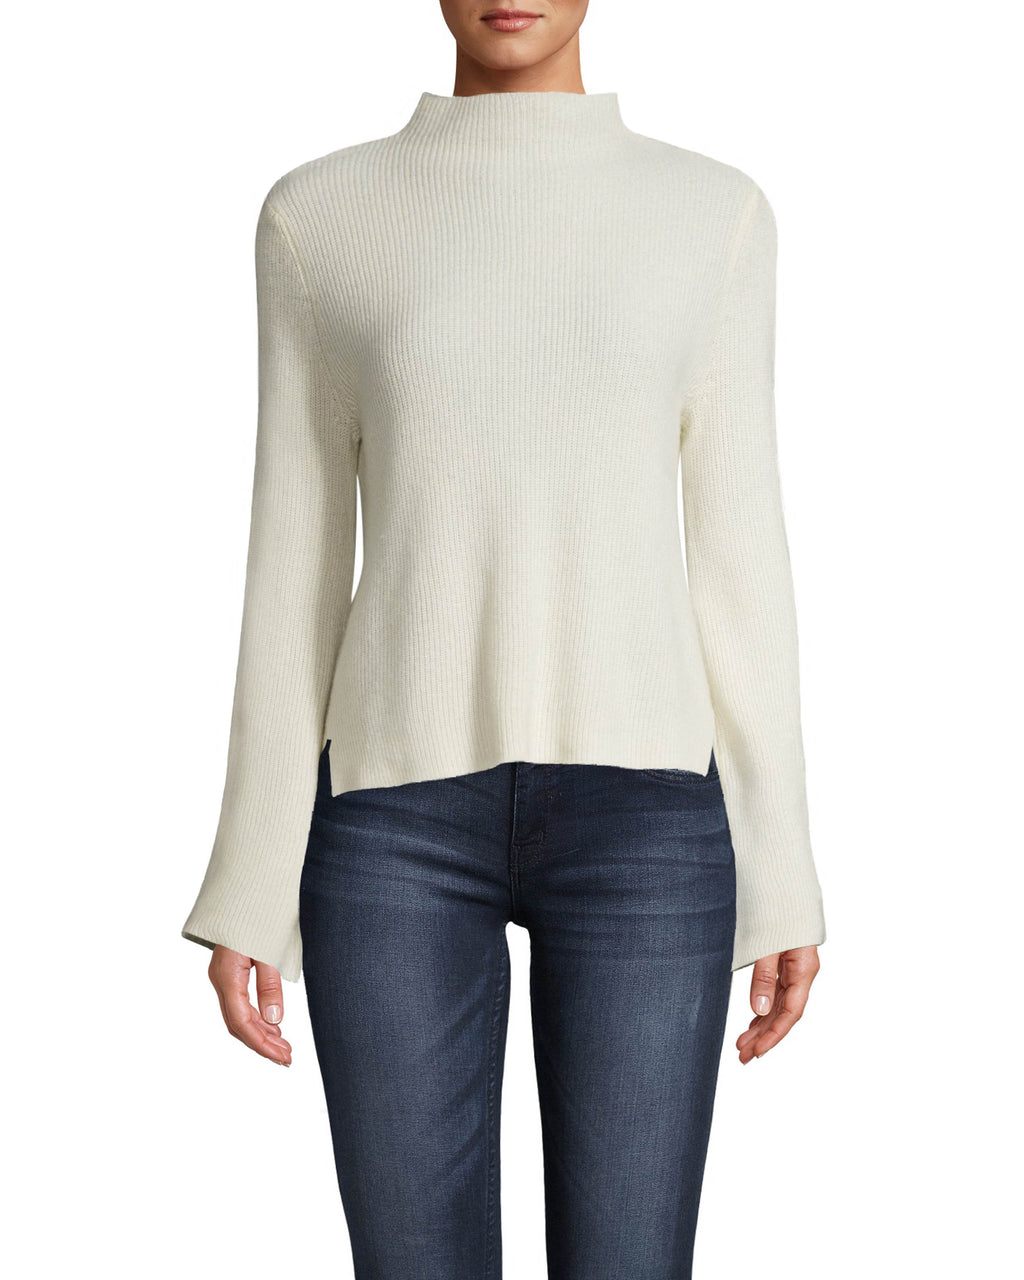 CT18048 - CASHMERE MOCK NECK SWEATER - tops - knitwear - OUR CASHMERE MOCK NECK SWEATER WILL BE ON REPEAT ALL FALL LONG. FEATURING A MOCK NECK, SLIGHT BELL SLEEVES AND A SUBTLE HI-LO HEM. Add 1 line break STYLIST TIP: WEAR THIS COZY SWEATER WHILE LOUNGING AT HOME FOR A CHIC LOUNGE LOOK.